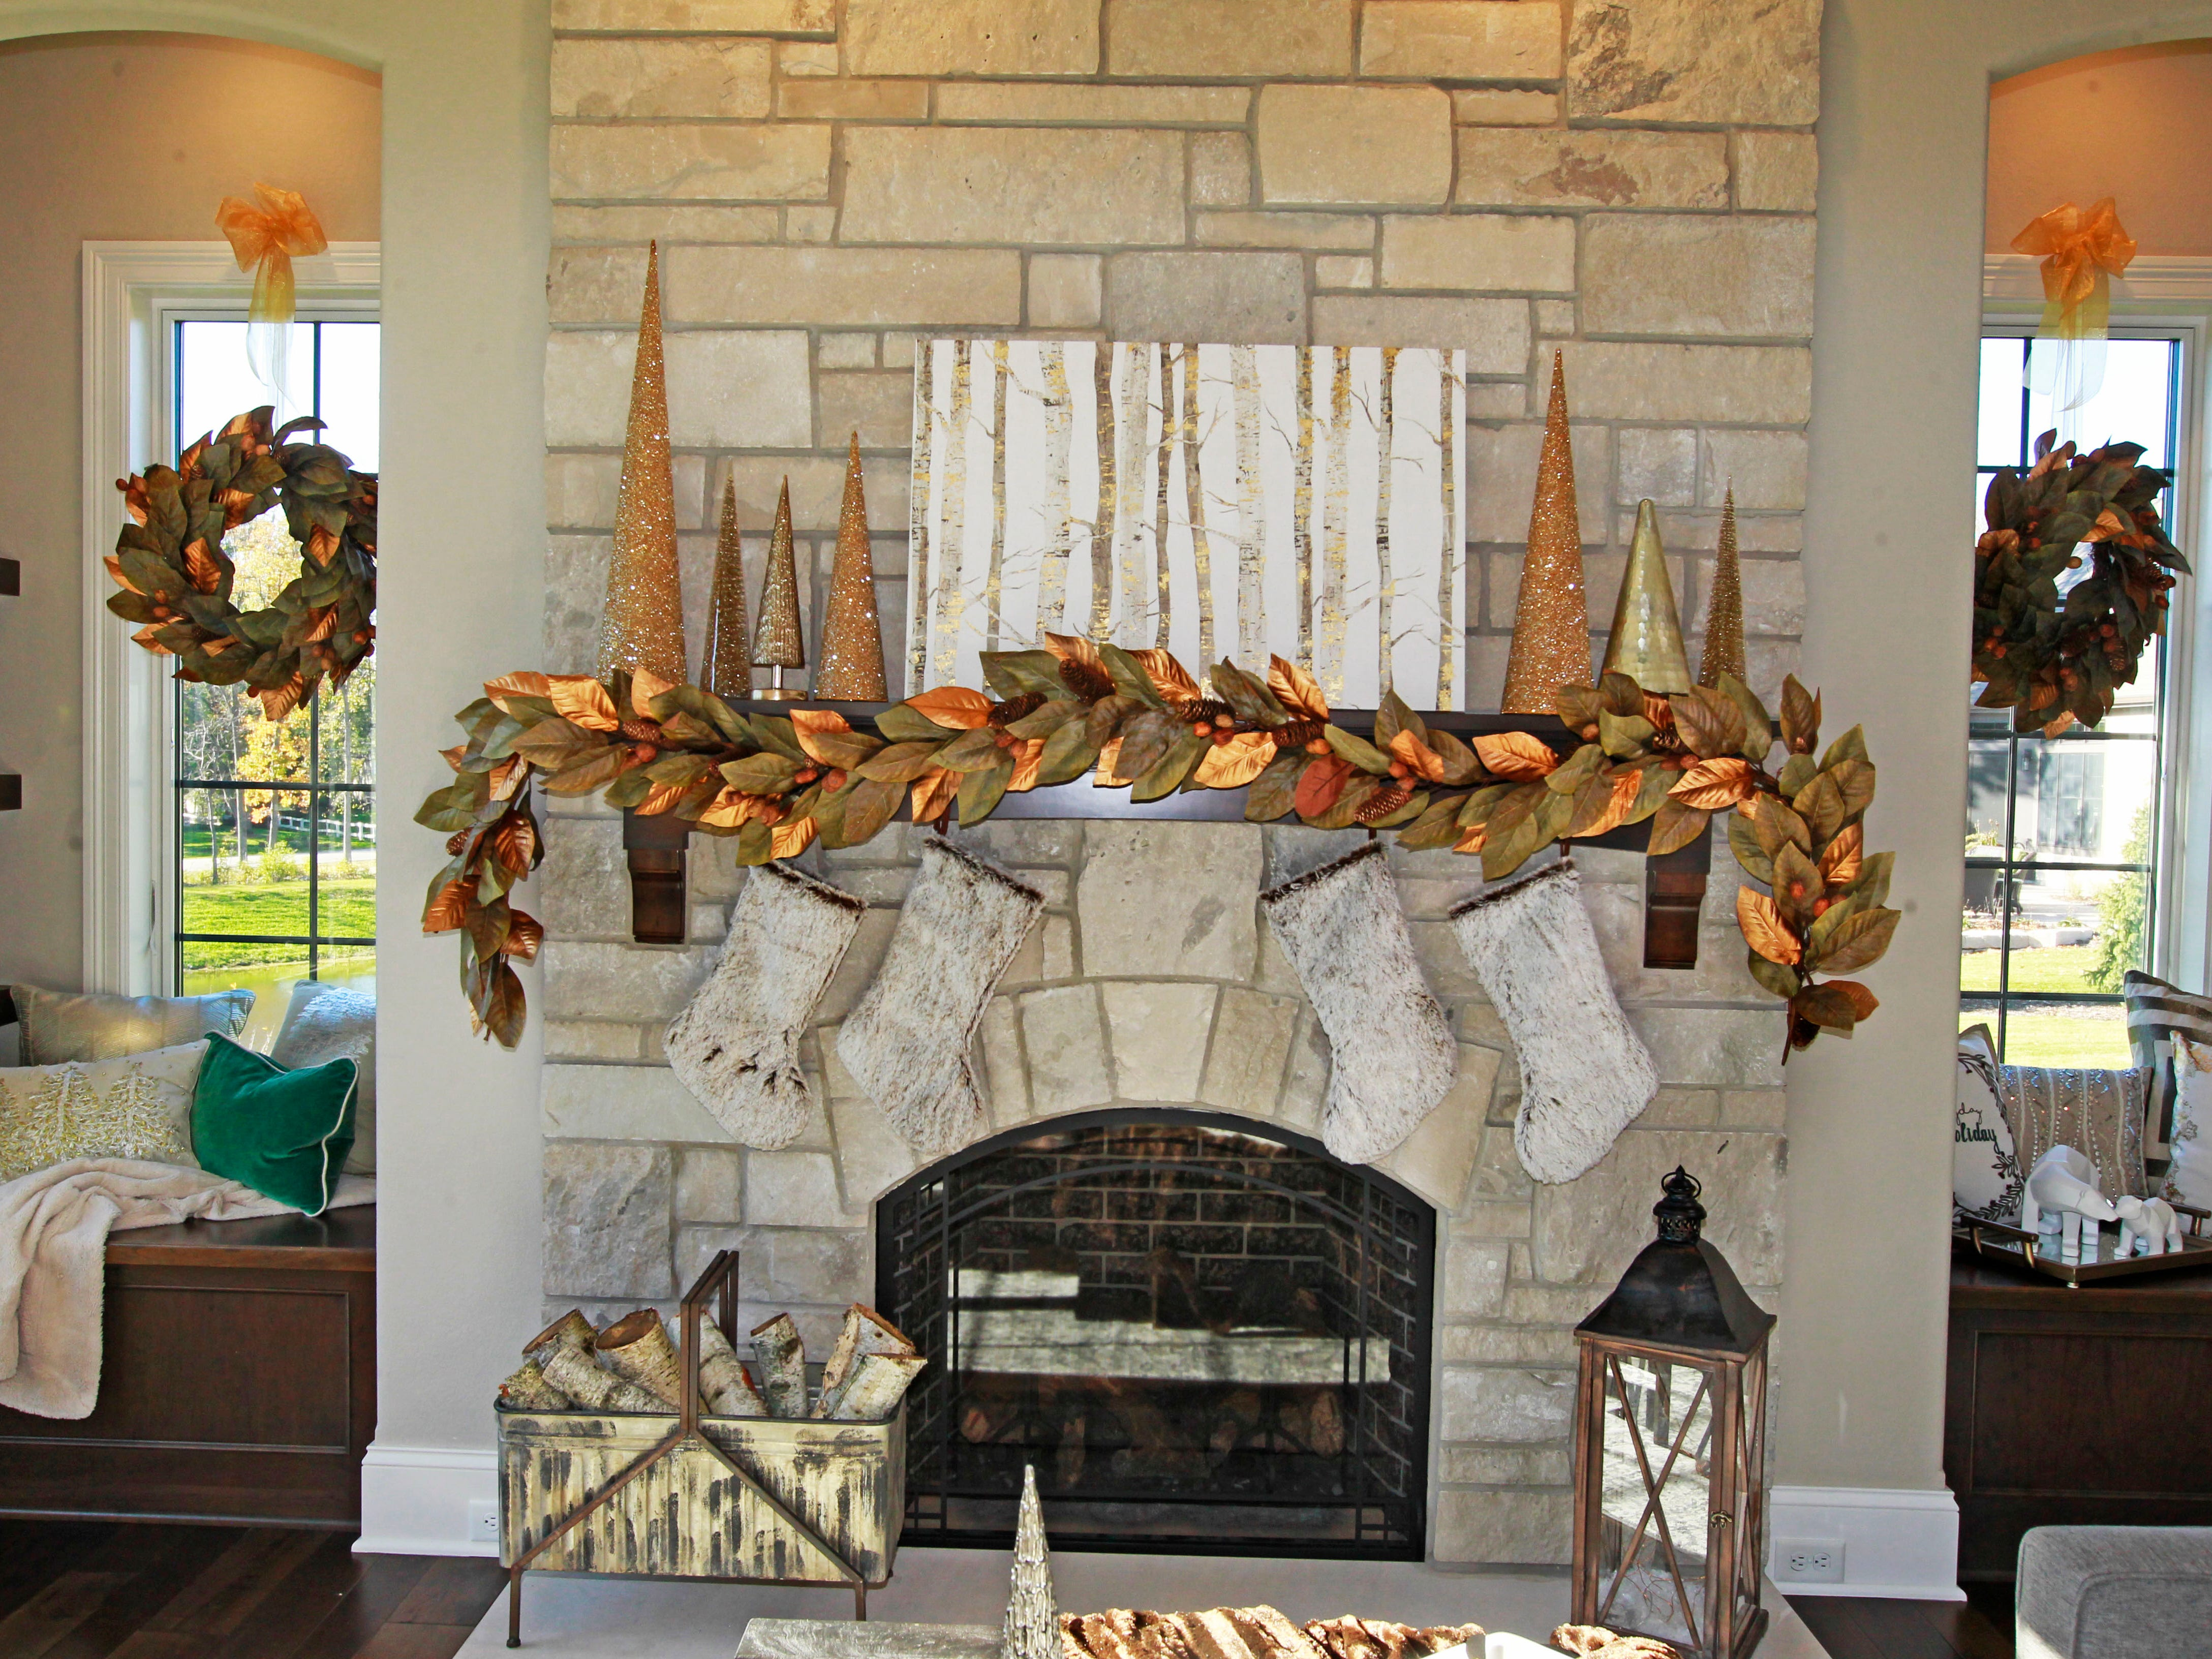 Matching wreaths hang on windows on both sides of the fireplace.